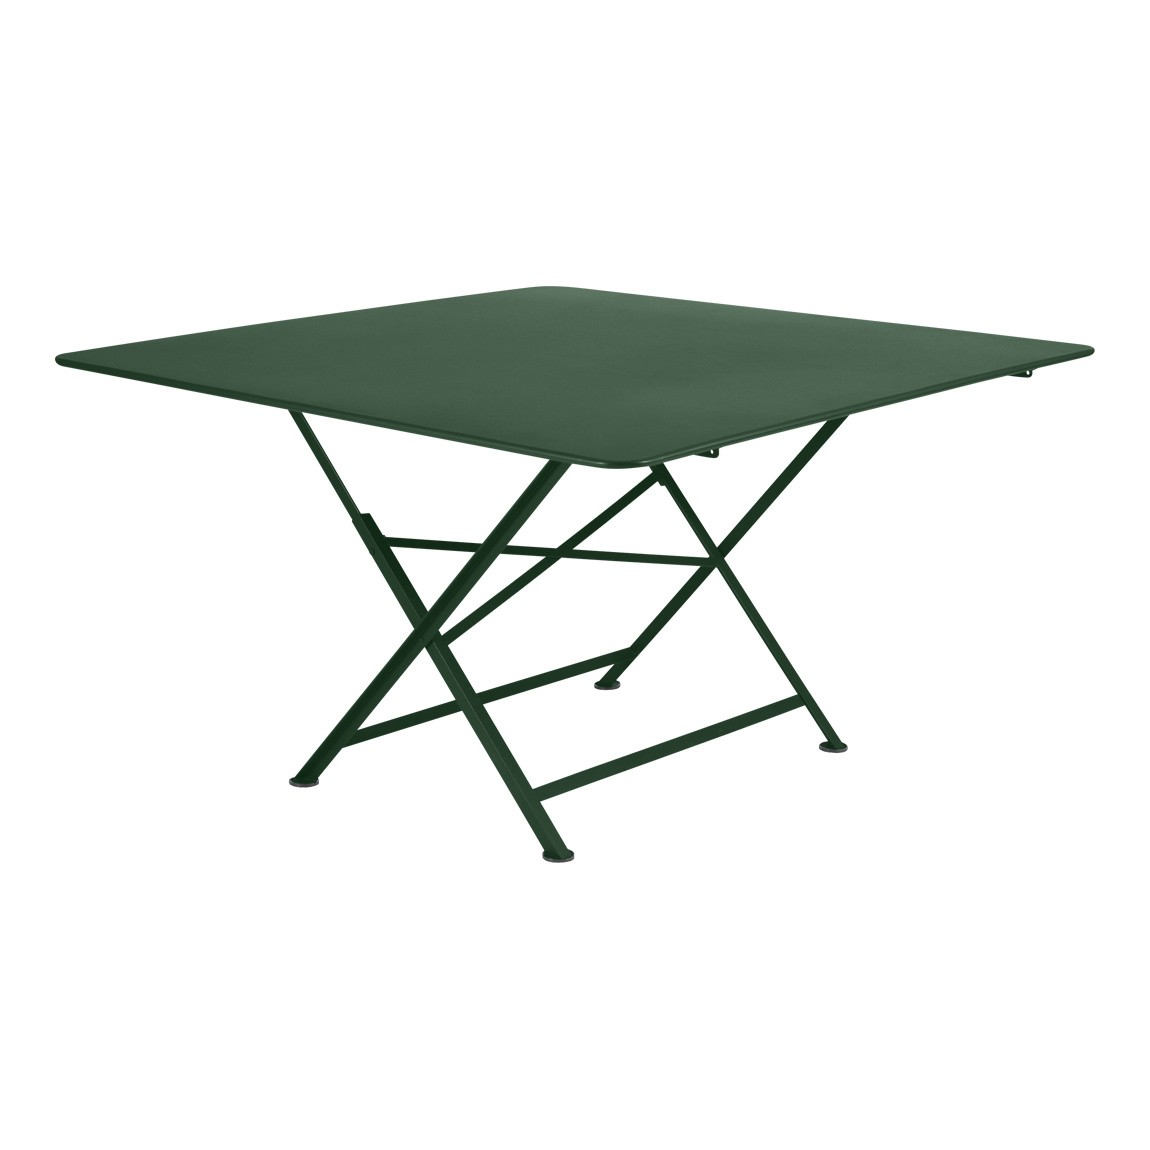 Table de jardin pliable Cargo